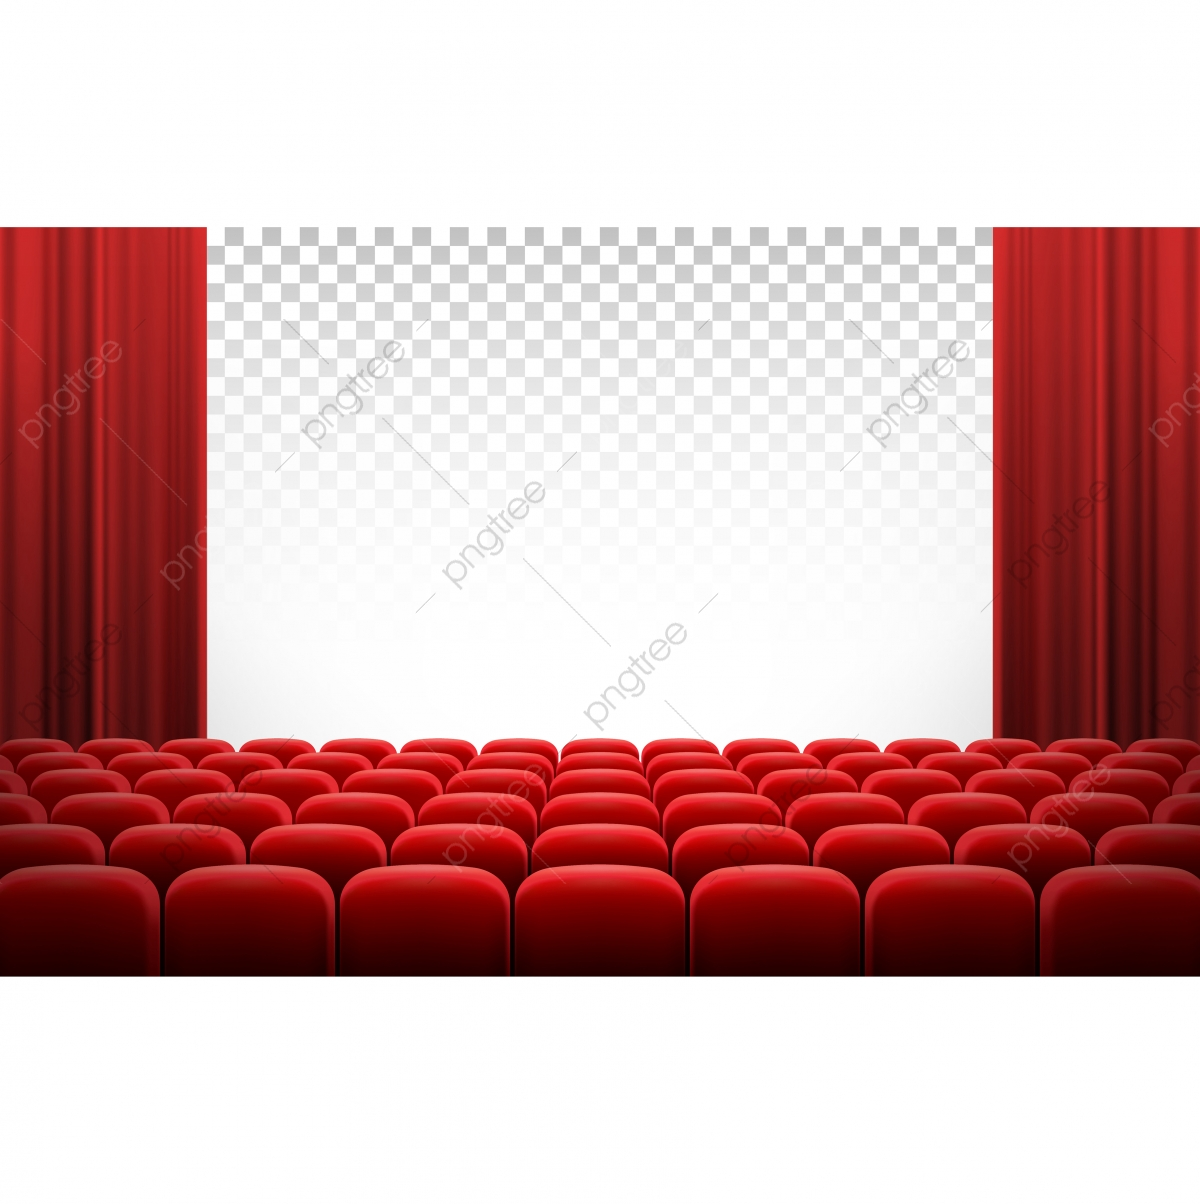 White Cinema Theatre Screen With Red Curtains And Chairs.